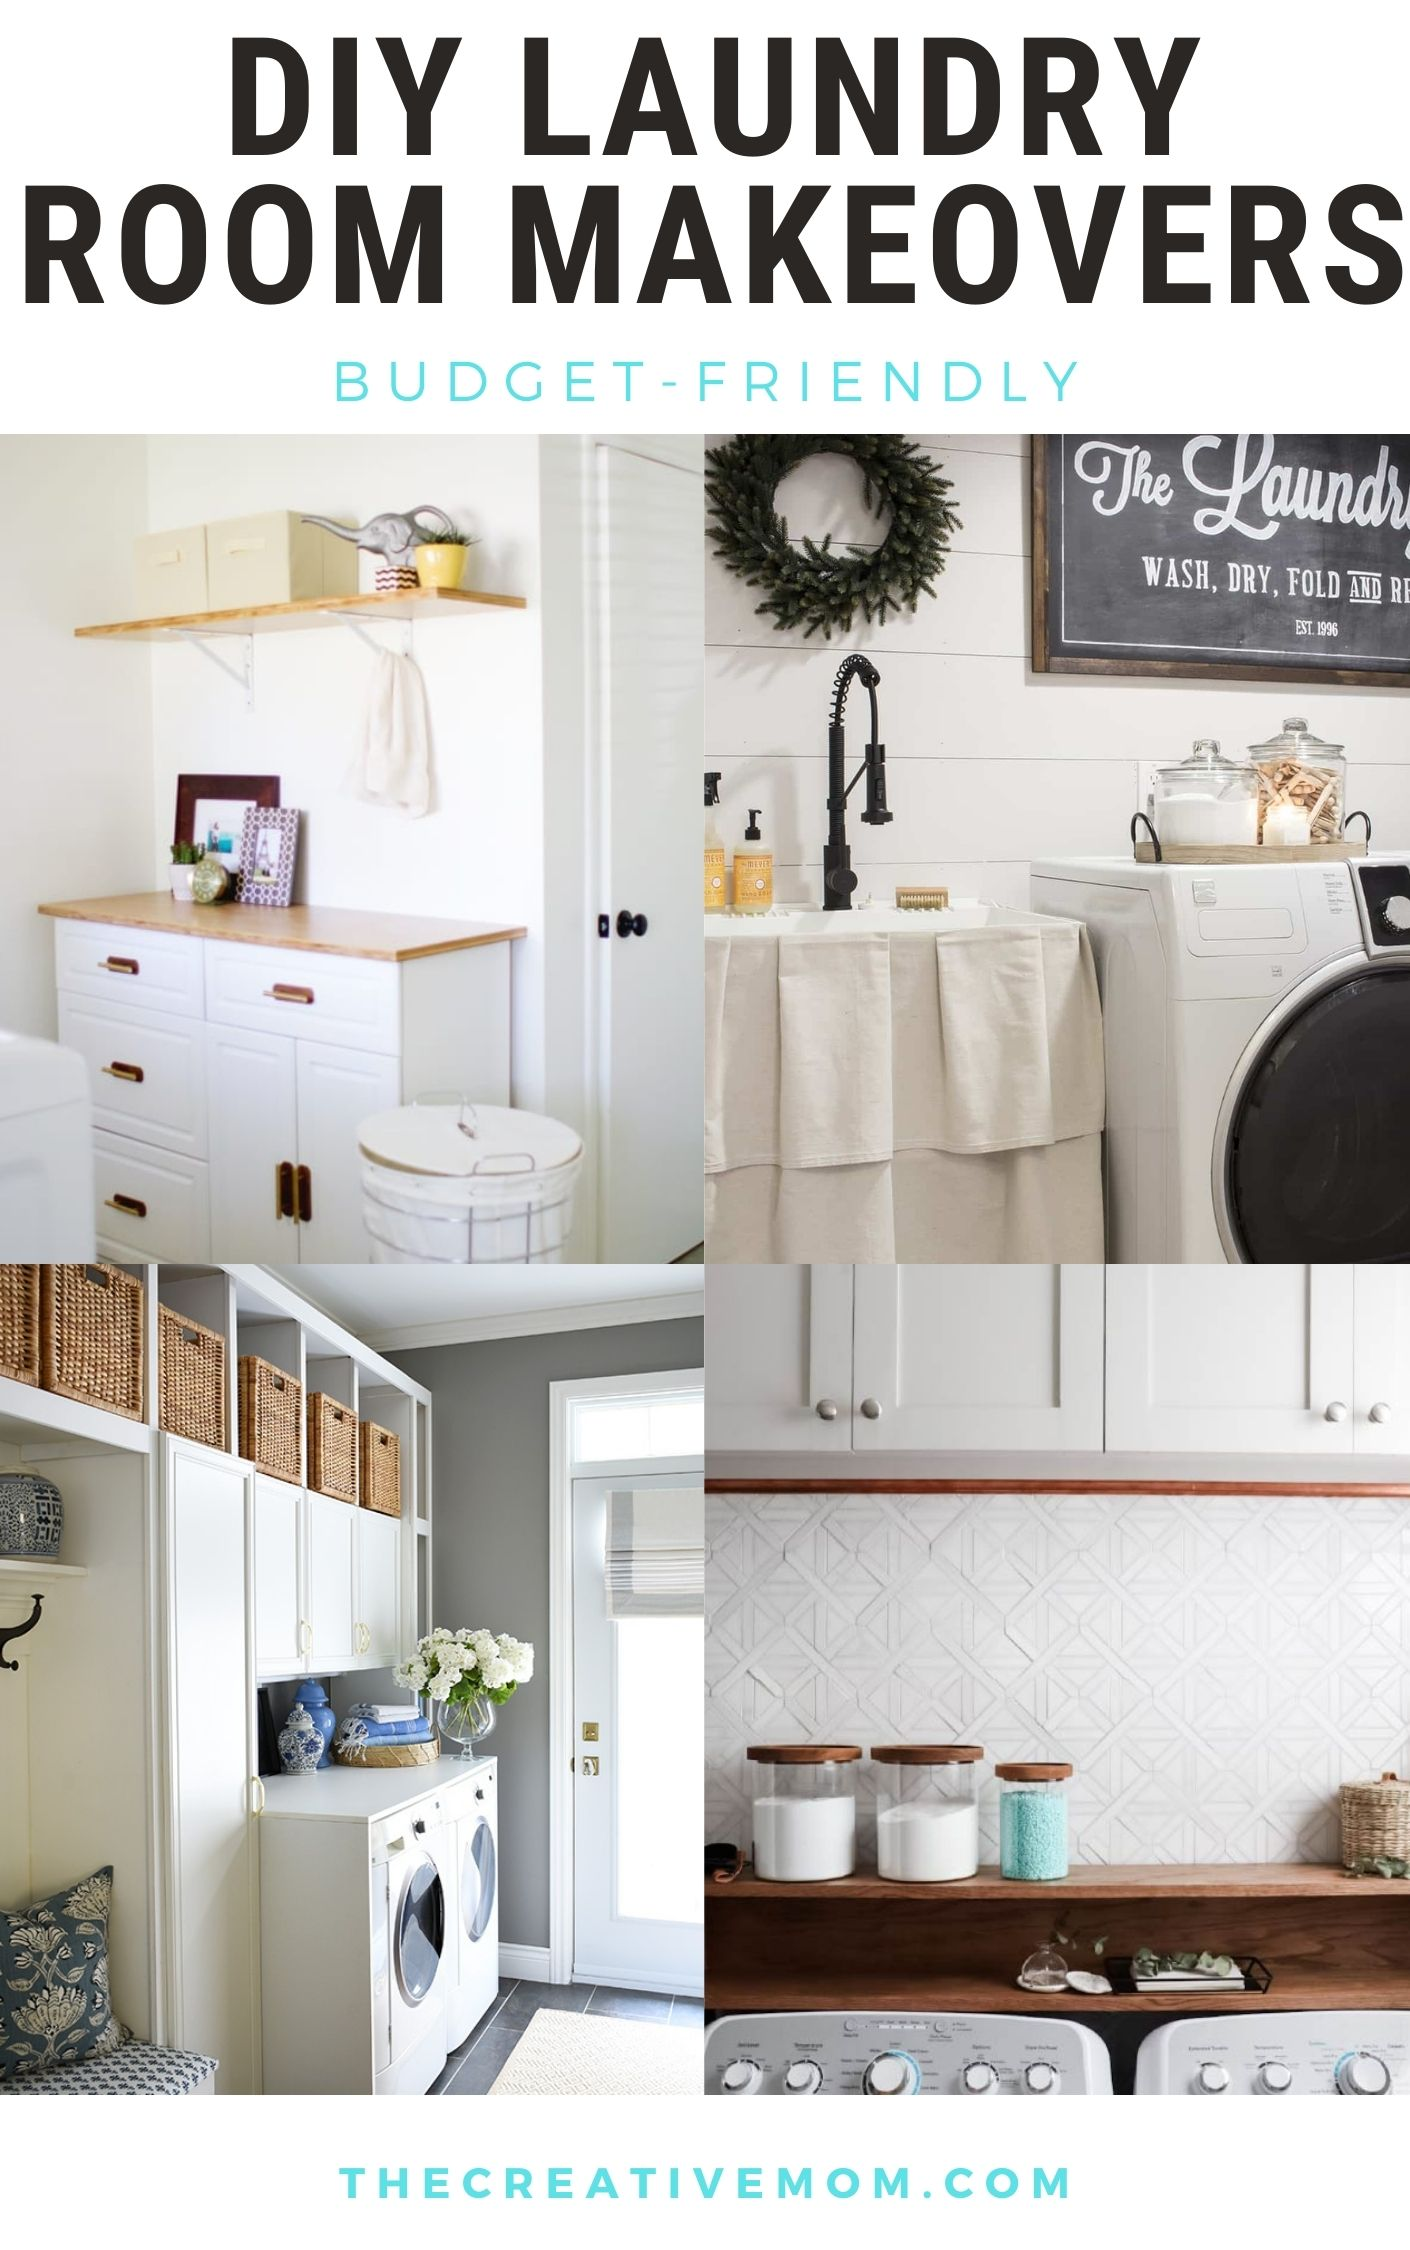 DIY laundry room makeovers budget friendly collage of 4 images